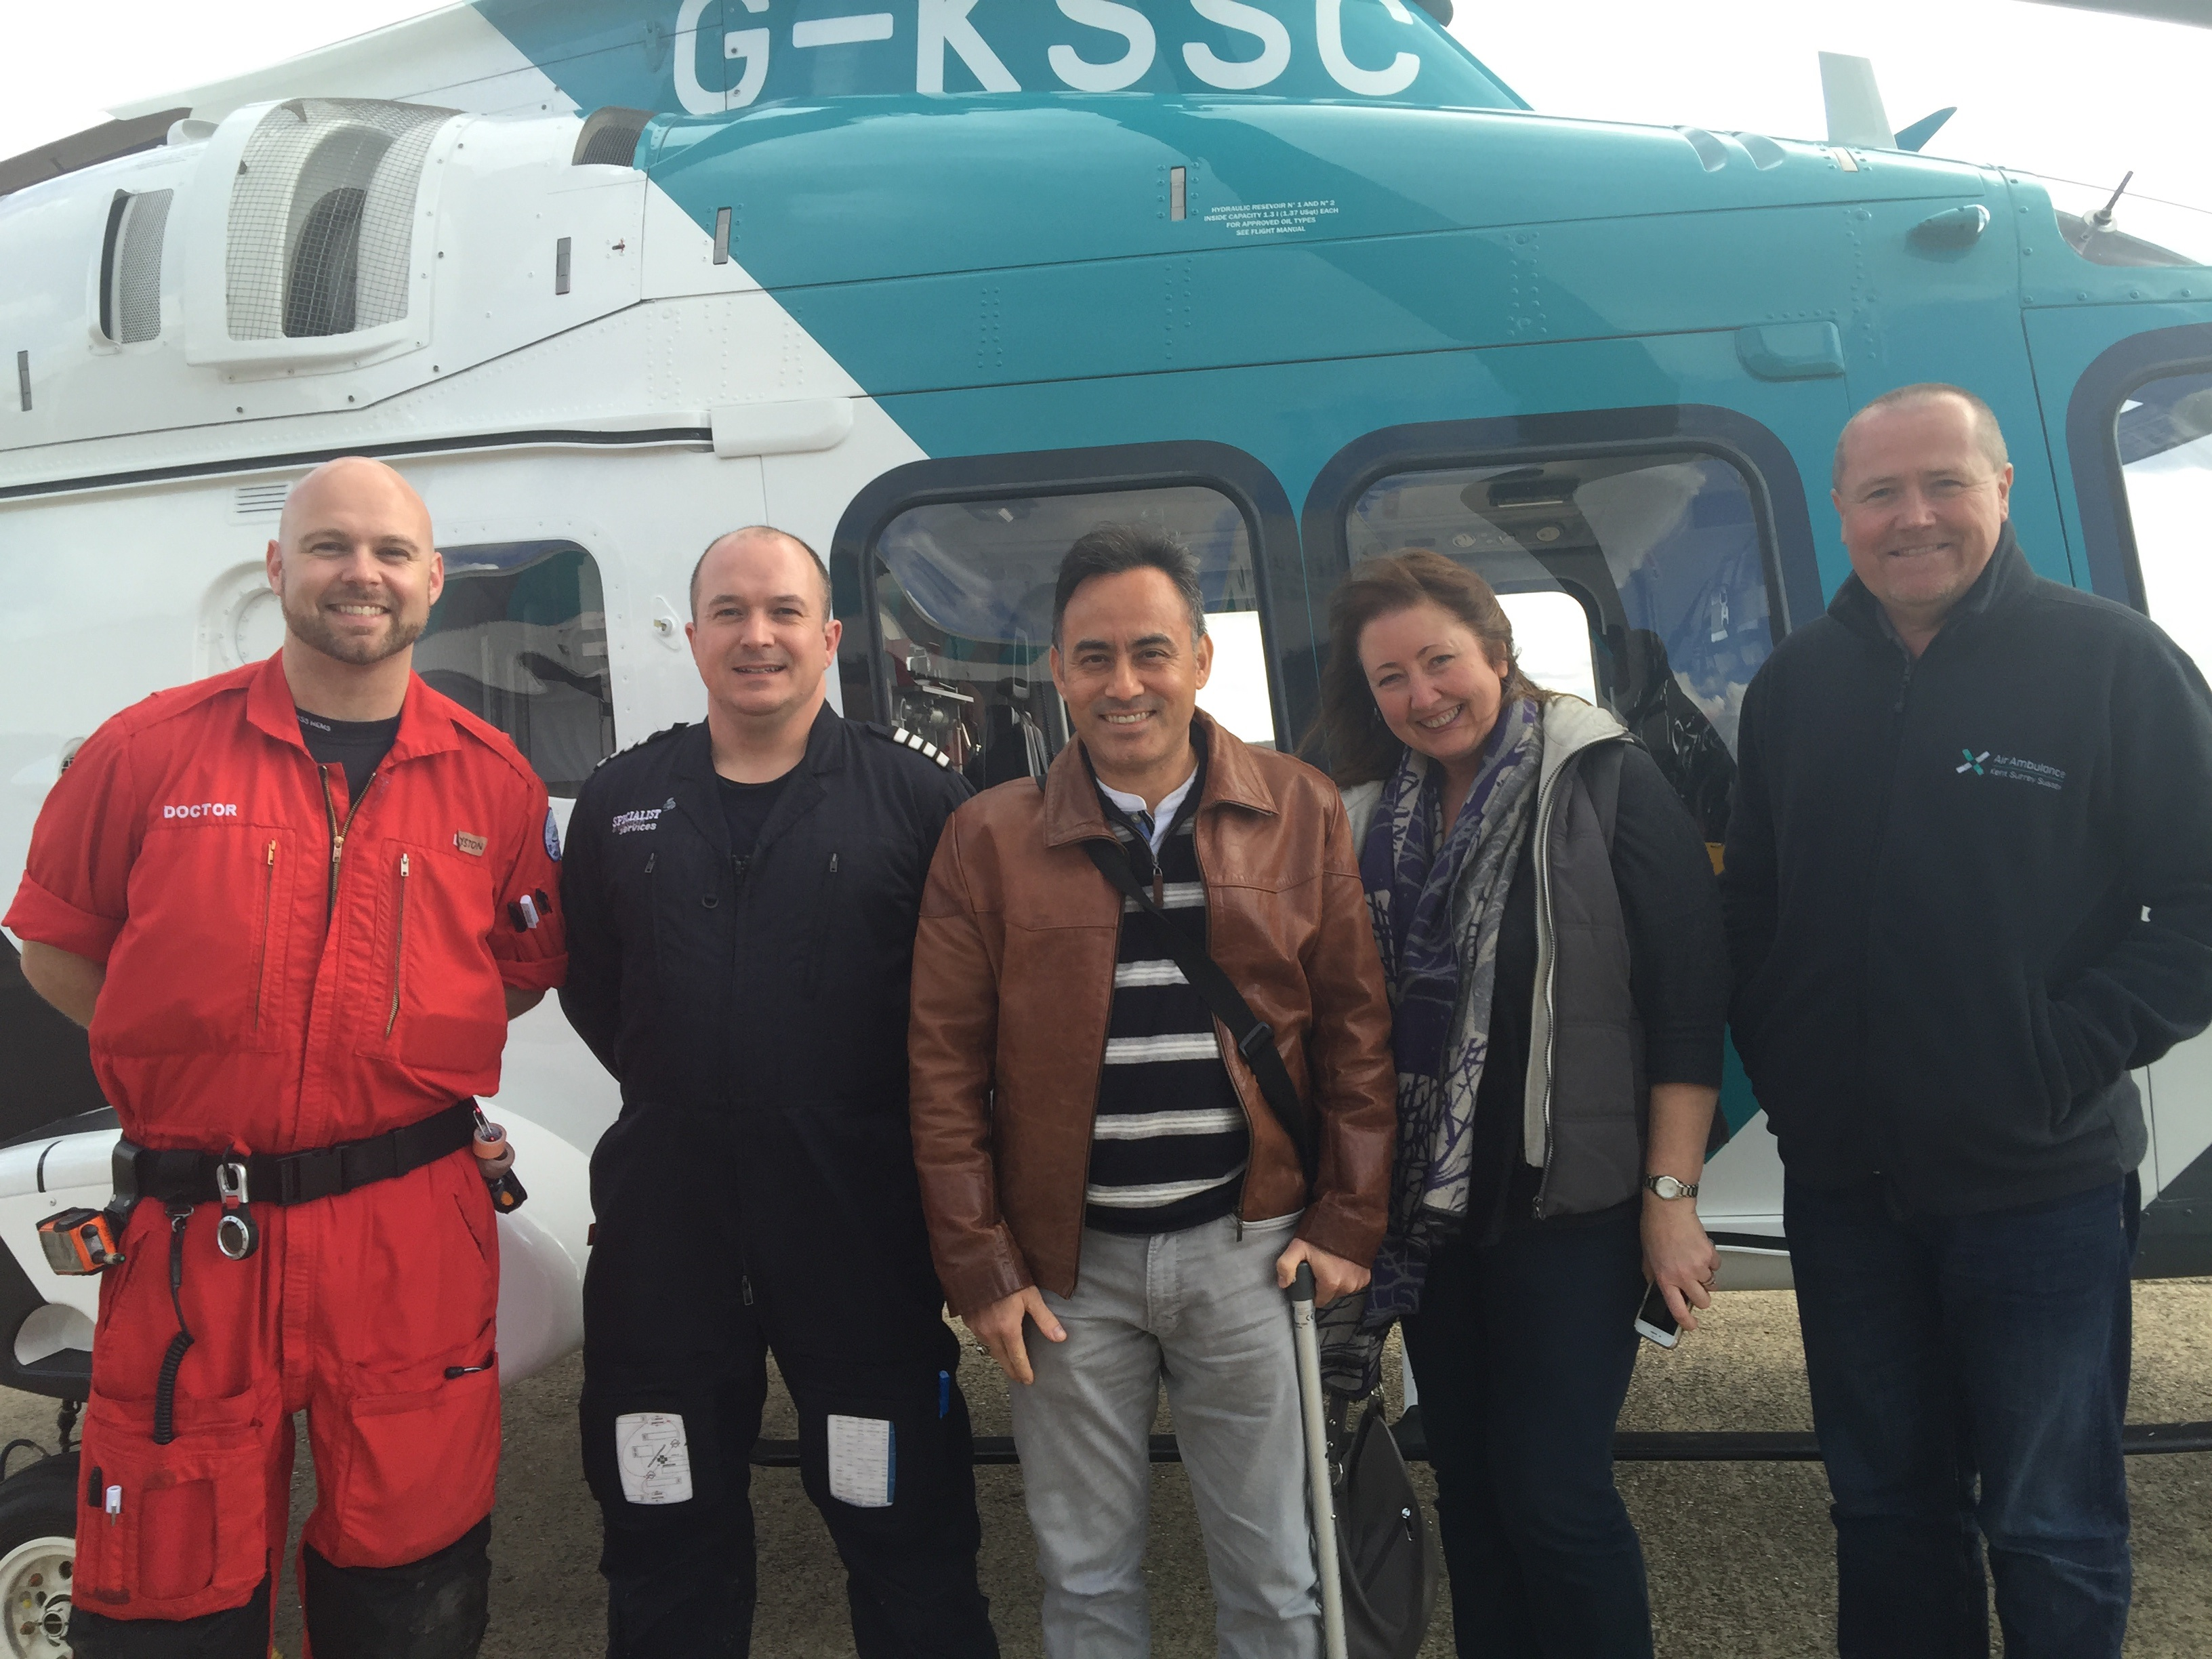 Left to right - Dr Eyston Vaughn-Huxley, Pilot Ben Richardson, Saroj, Sarah and Paramedic David Wright